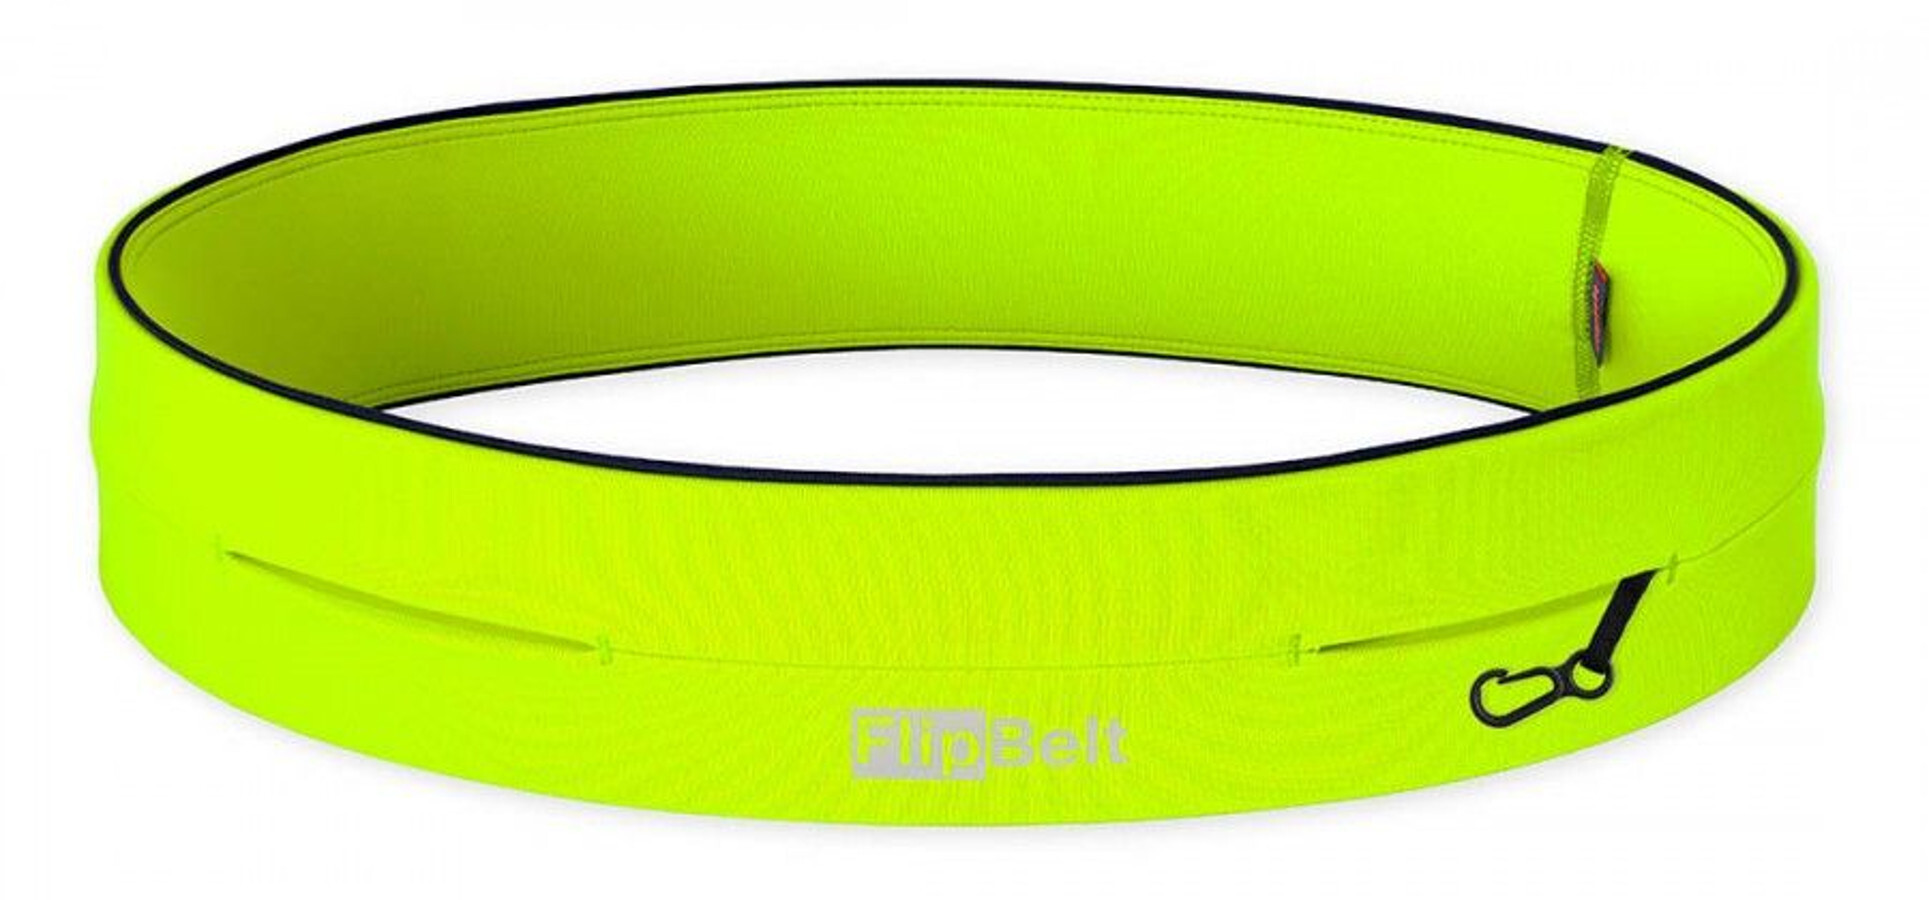 FlipBelt Classic, nuclear yellow | Andet beklædning